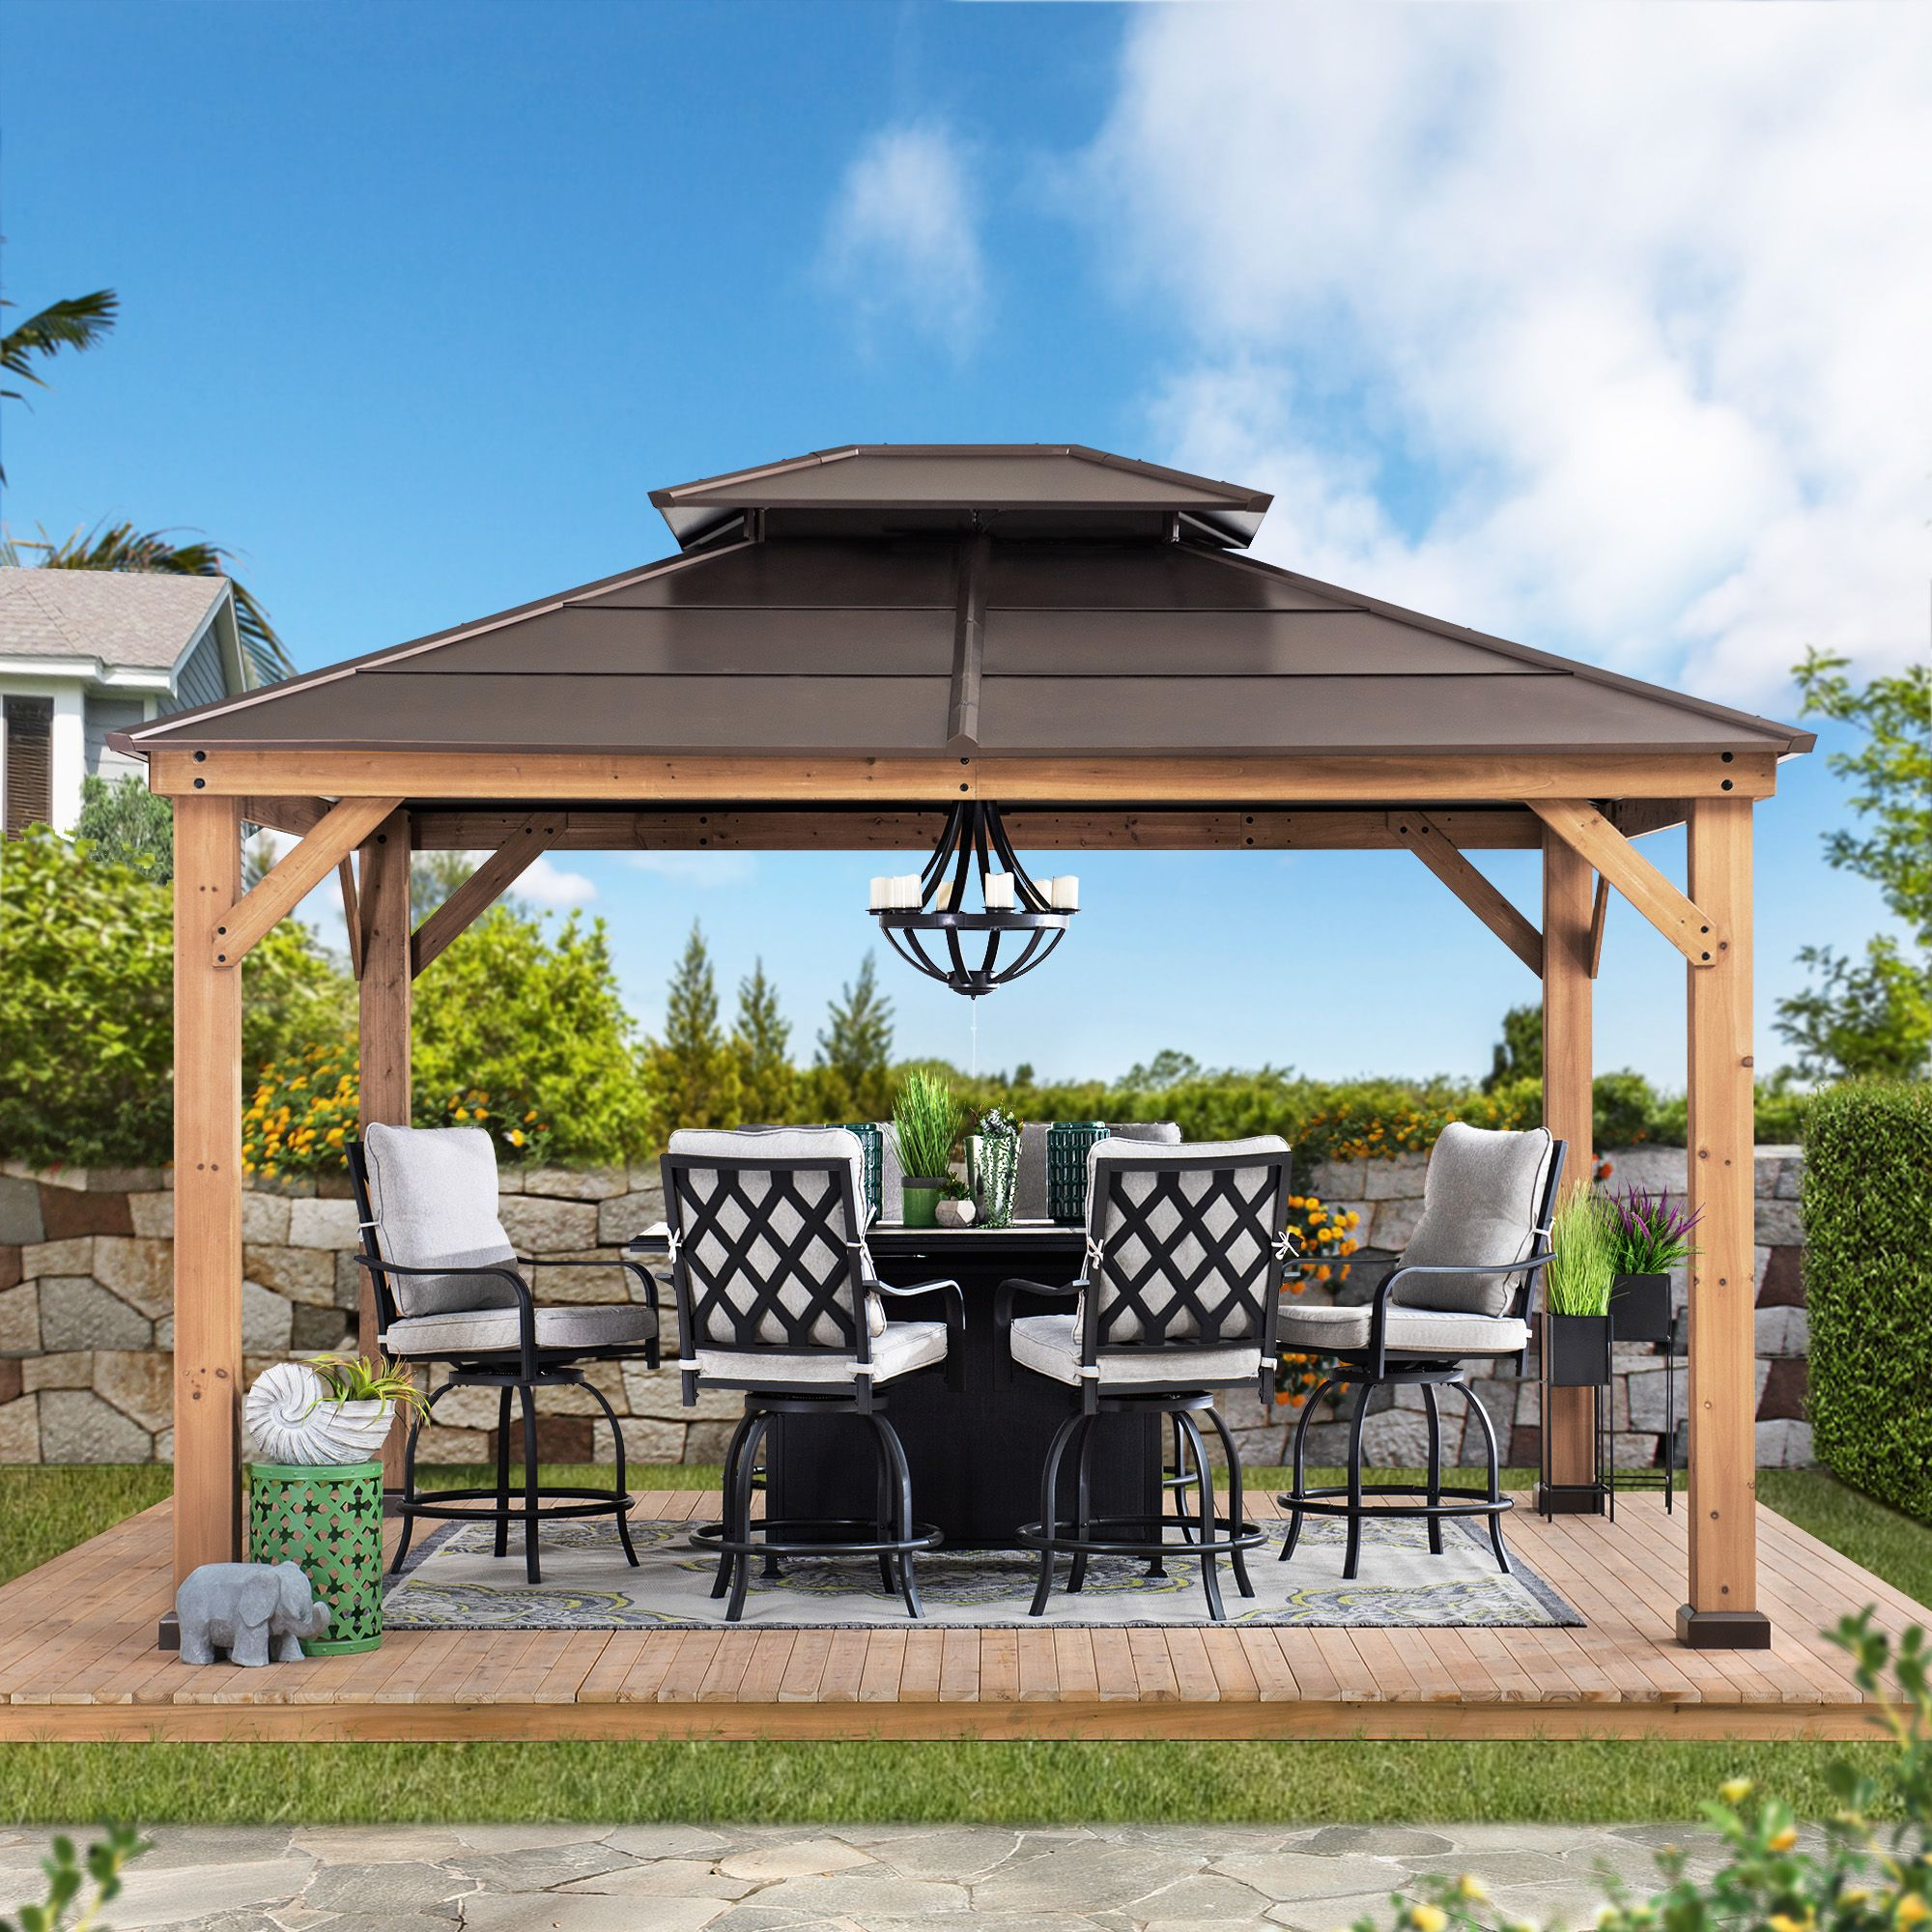 Sunjoy Missouri Collection 10 Ft X 12 Ft Cedar Framed Gazebo With Brown Steel 2 Tier Hip Roof Hardtop Walmart Com In 2020 Gazebo Backyard Gazebo Gazebo Roof